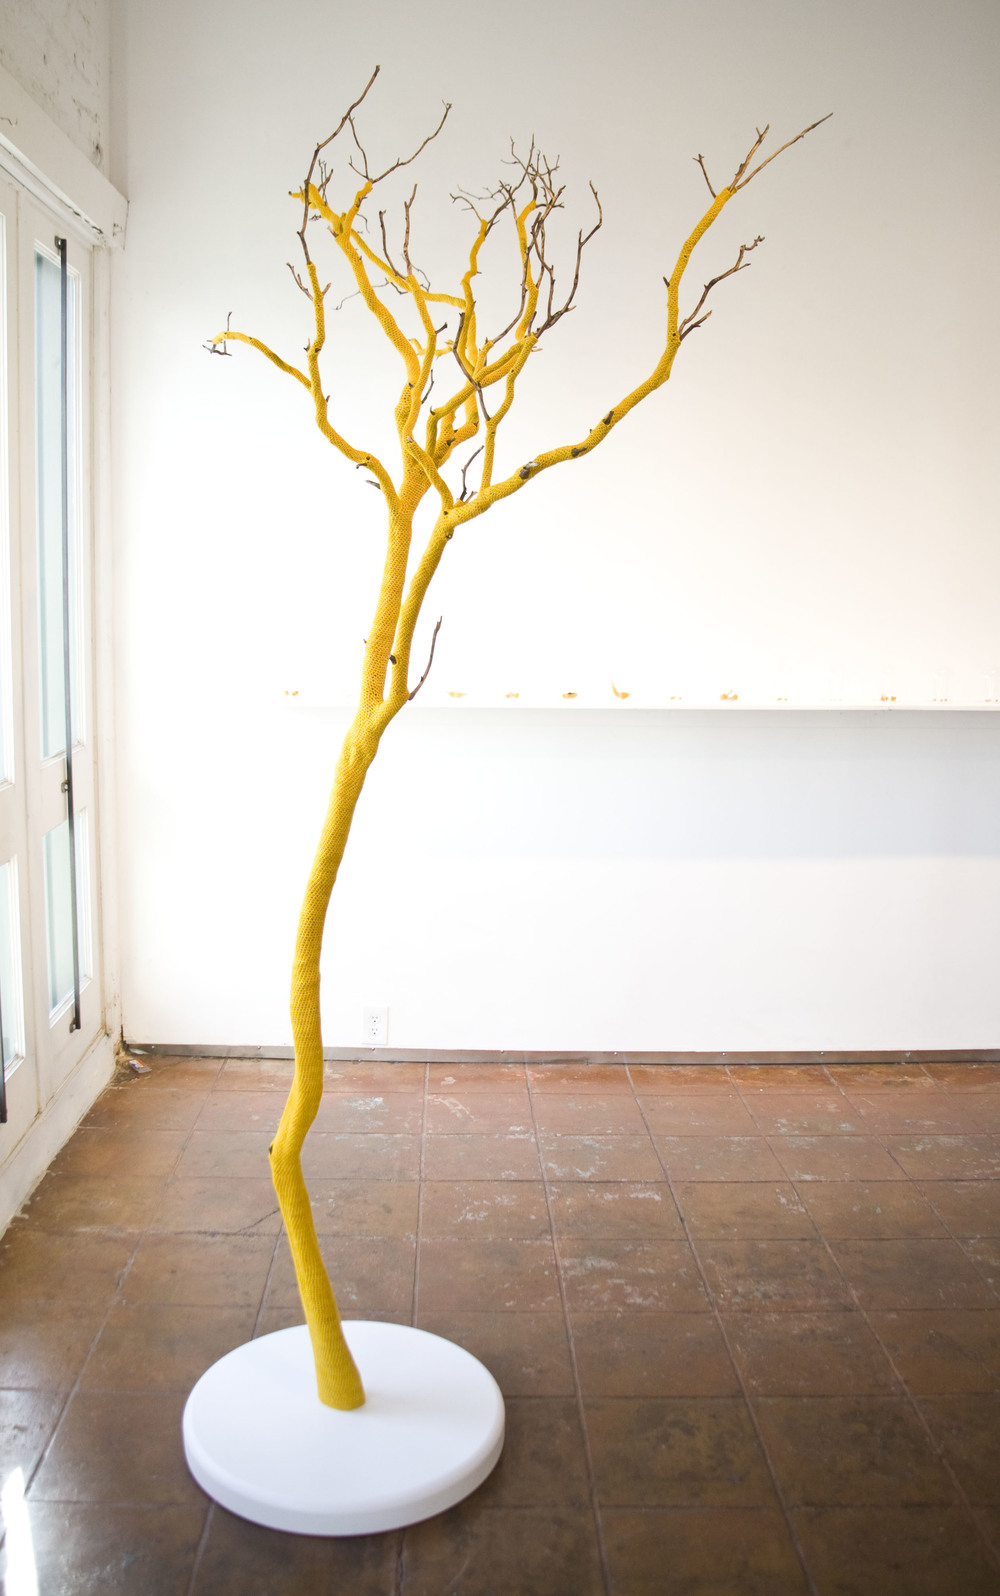 Untitled (standing tree), 2014, tree limb, hand-dyed bamboo yarn and cotton thread, 90 x 54 x 27 inches